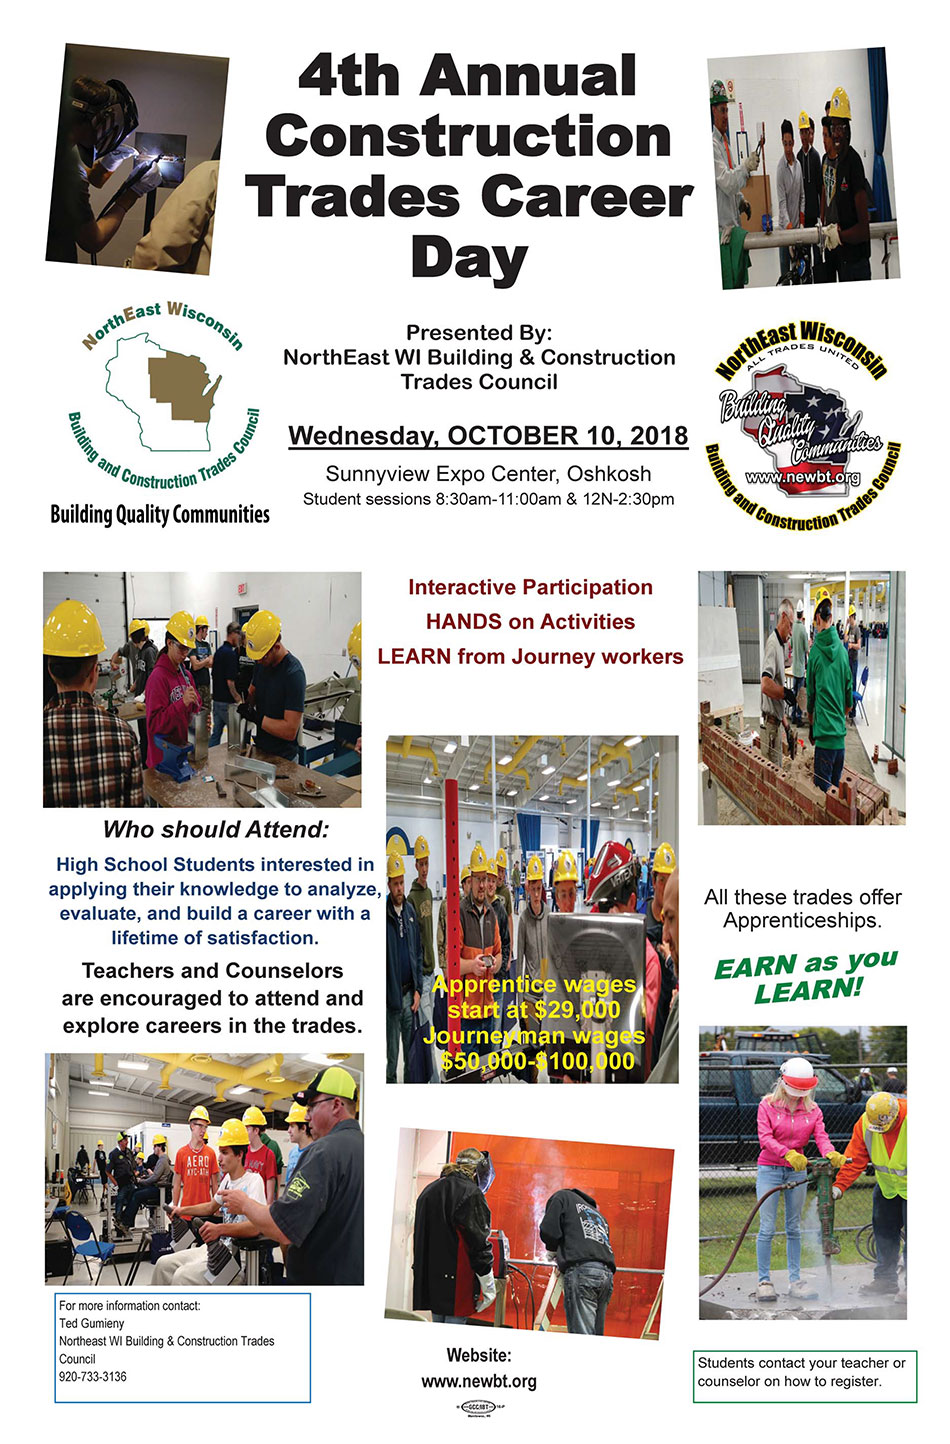 2018 Construction Trades Career Day Event,Northeast WI Building and Construction Trades Council